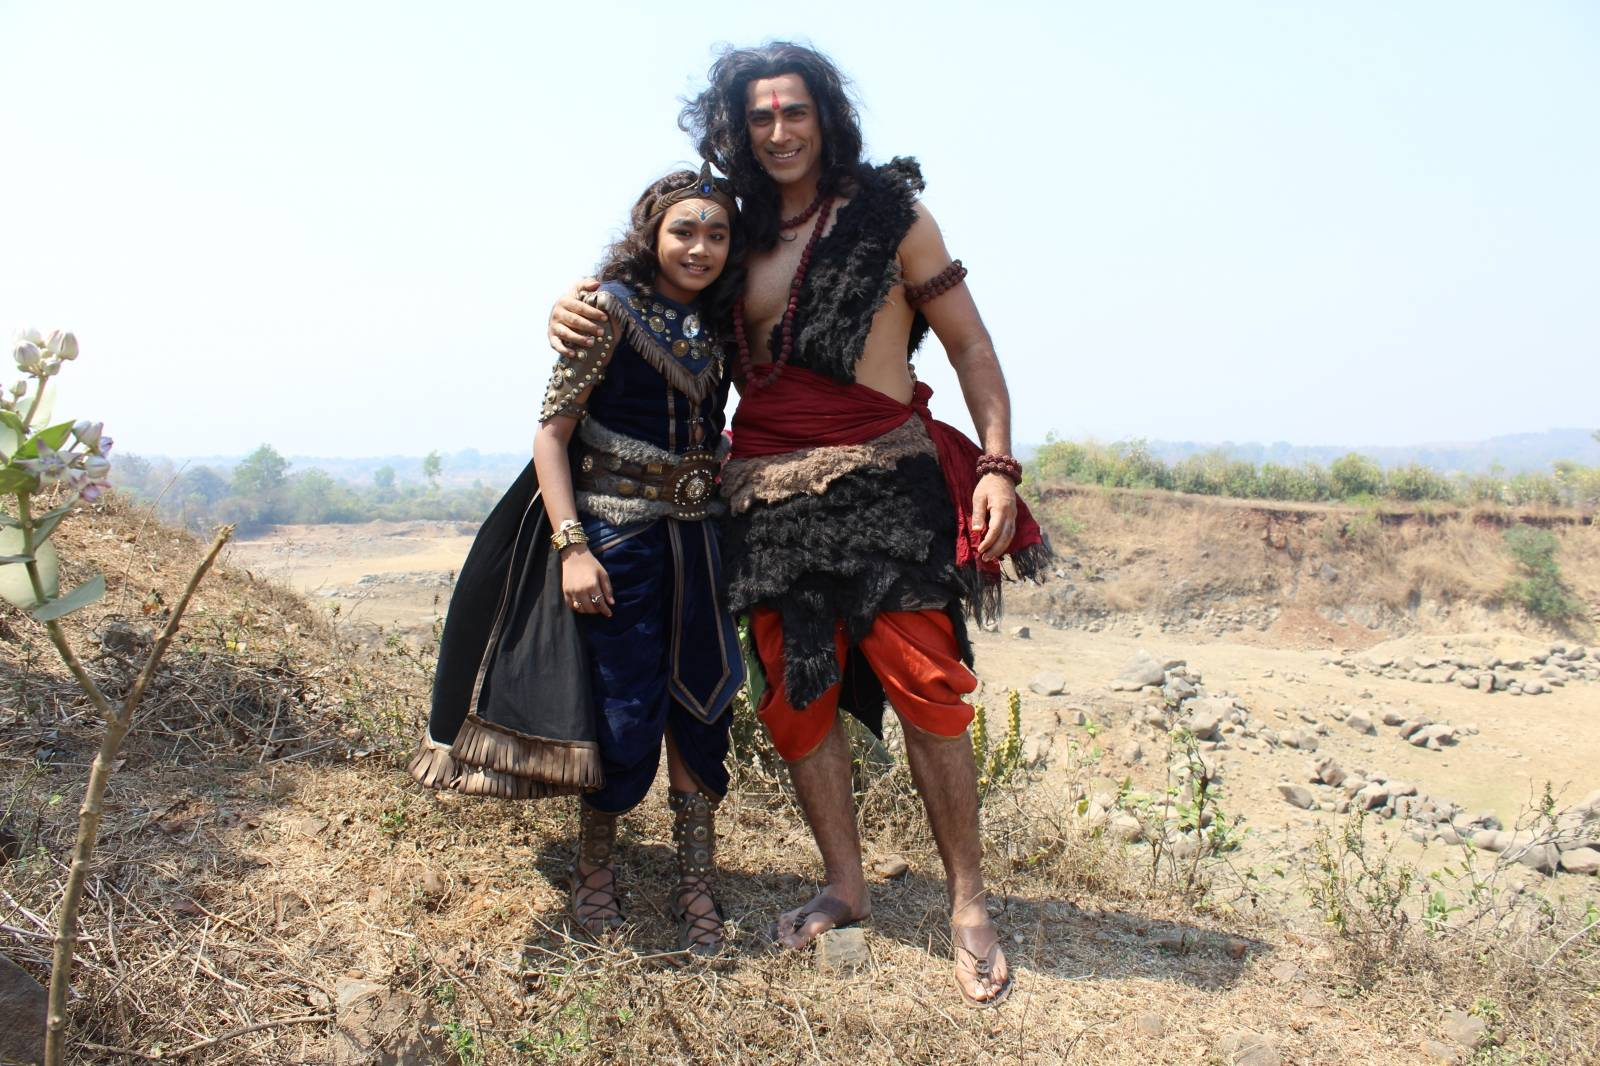 Exclusive Pictures From The Sets Of Shani